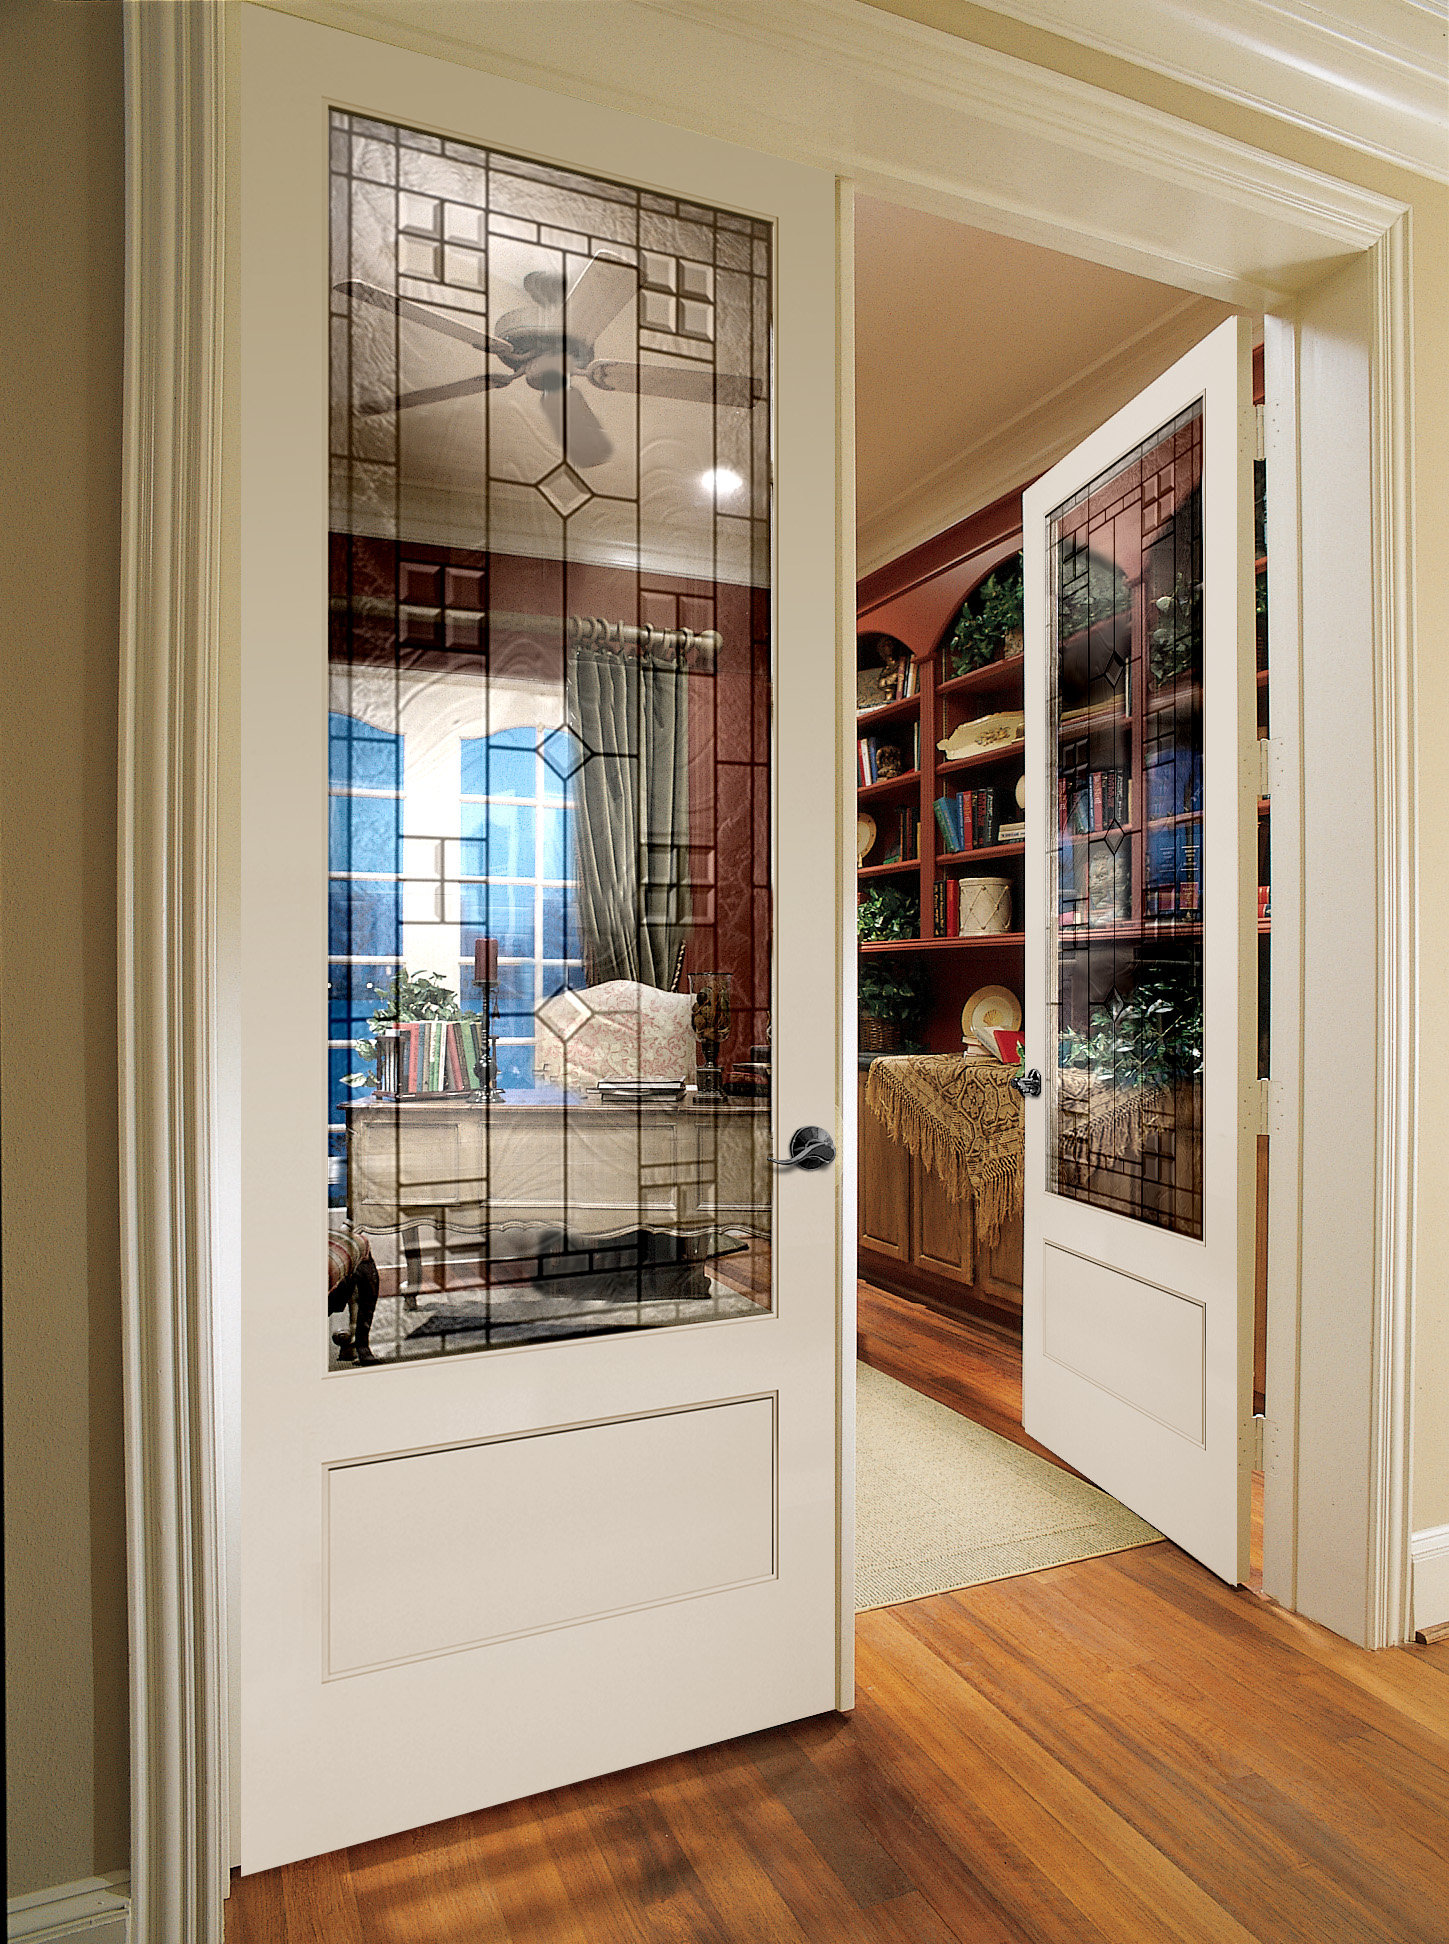 20 adventiges of French doors interior design